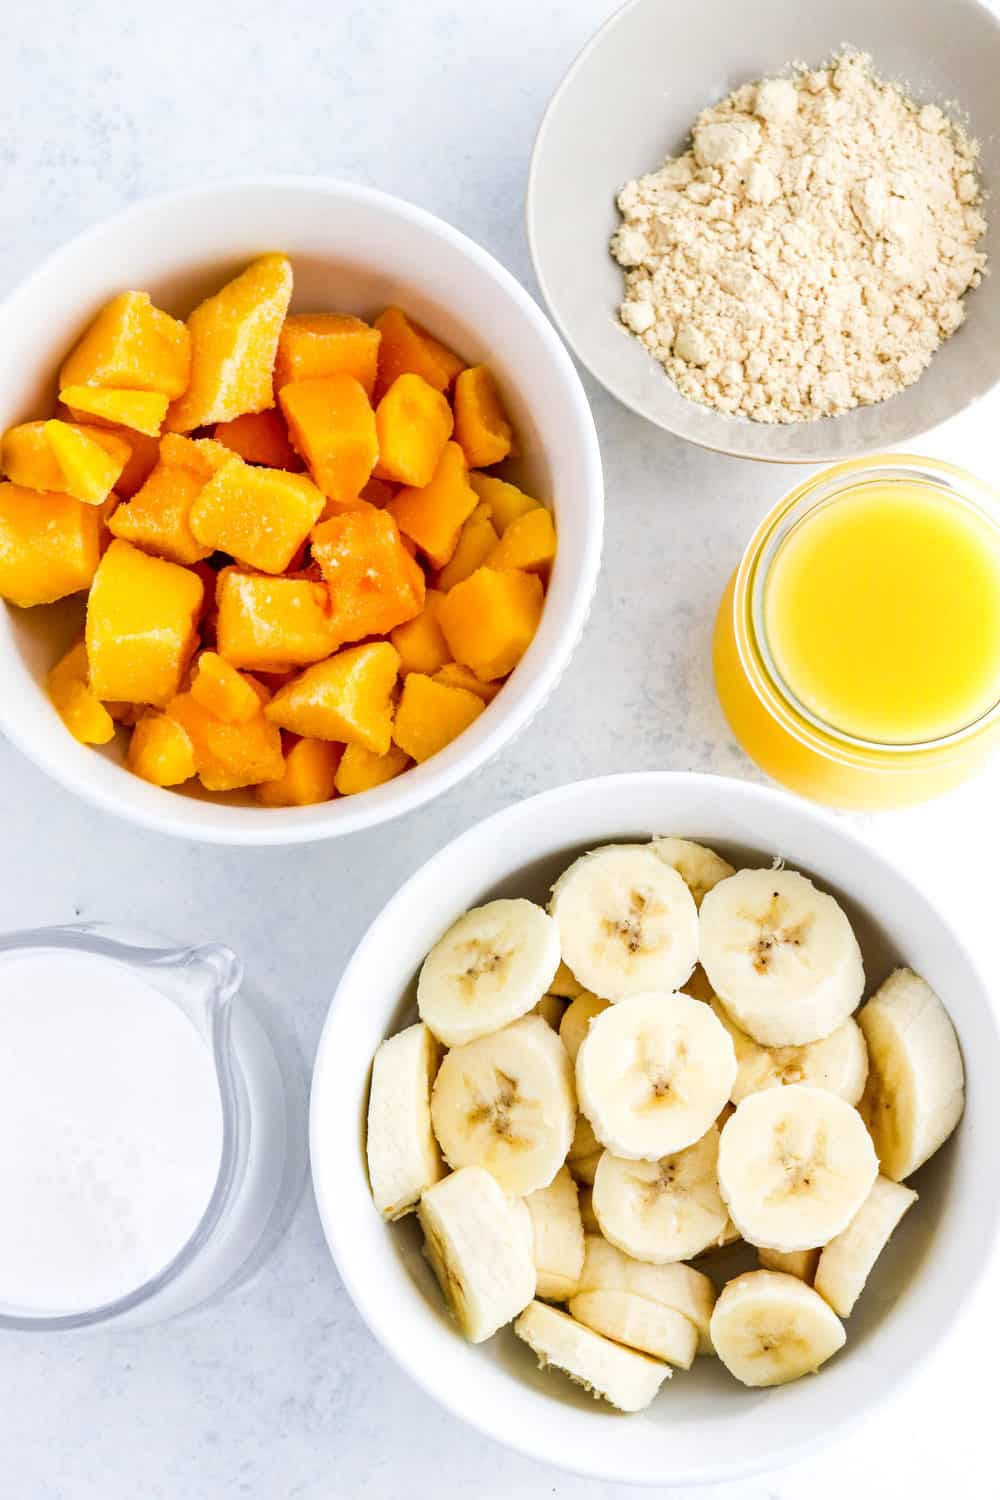 White round bowl filled with frozen mango pieces, with a bowl of protein powder and glass of orange juice next to it and a round white bowl filled with cut bananas in front of it.